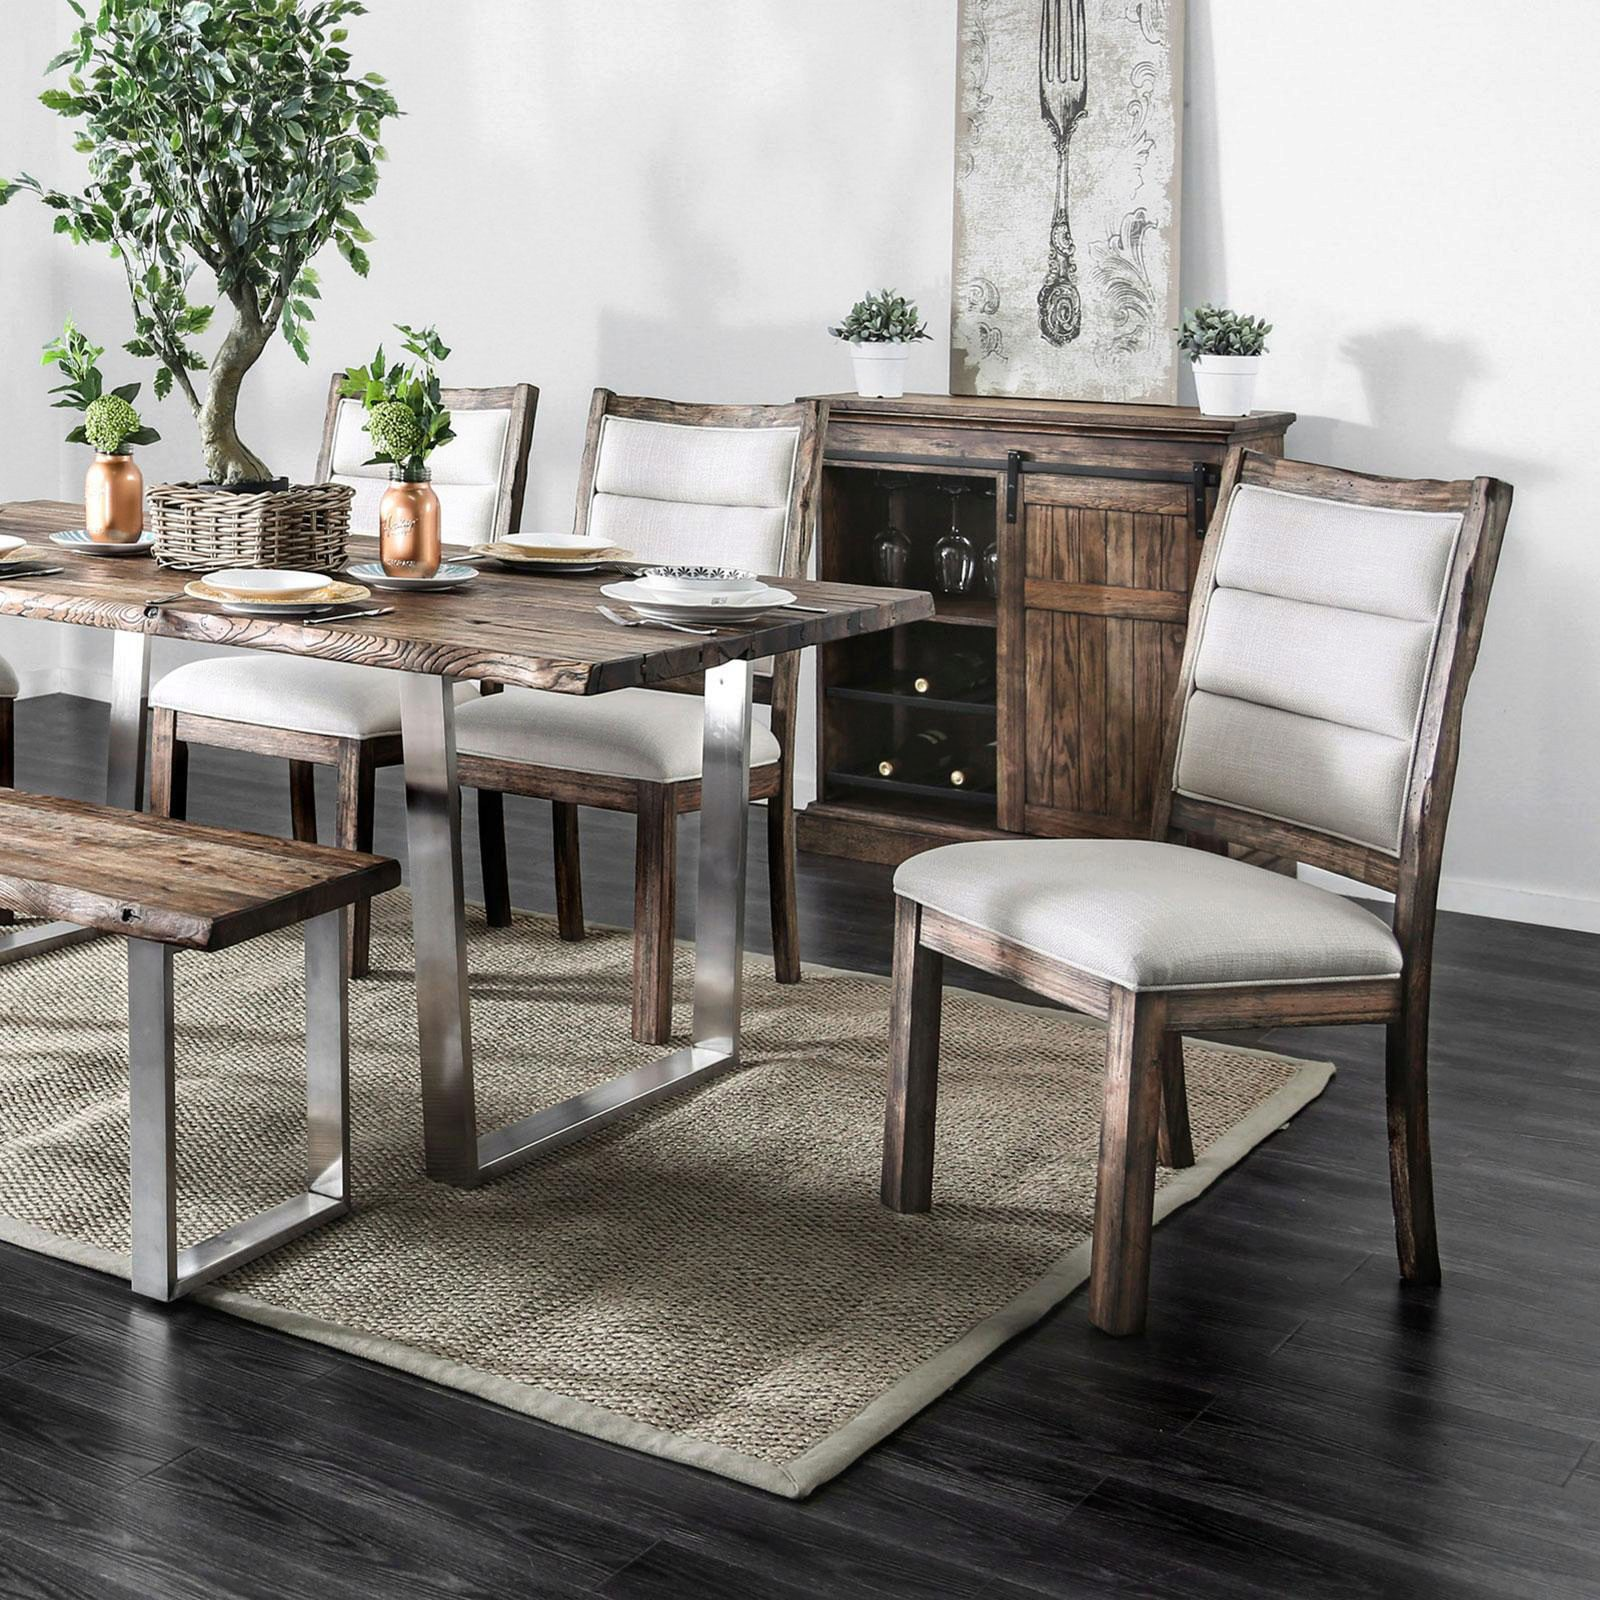 Rustic Style Oak Finish Dining Table Mandy By Furniture Of America Cm3451a T Table